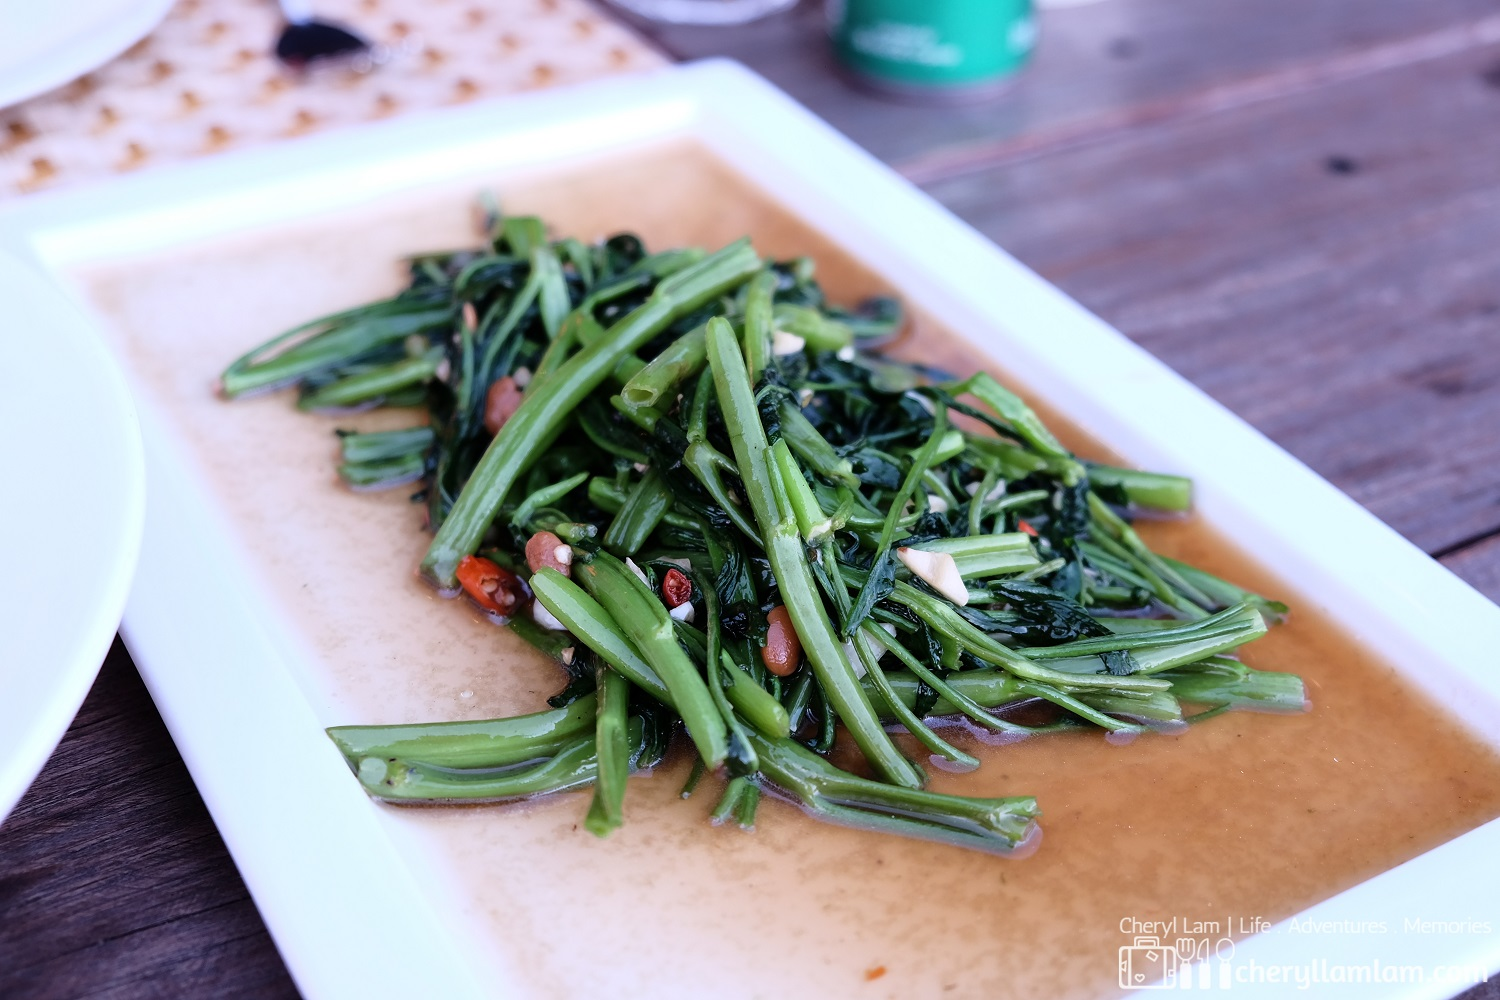 My all-time favourite: stir-fried morning glory (water spinach)